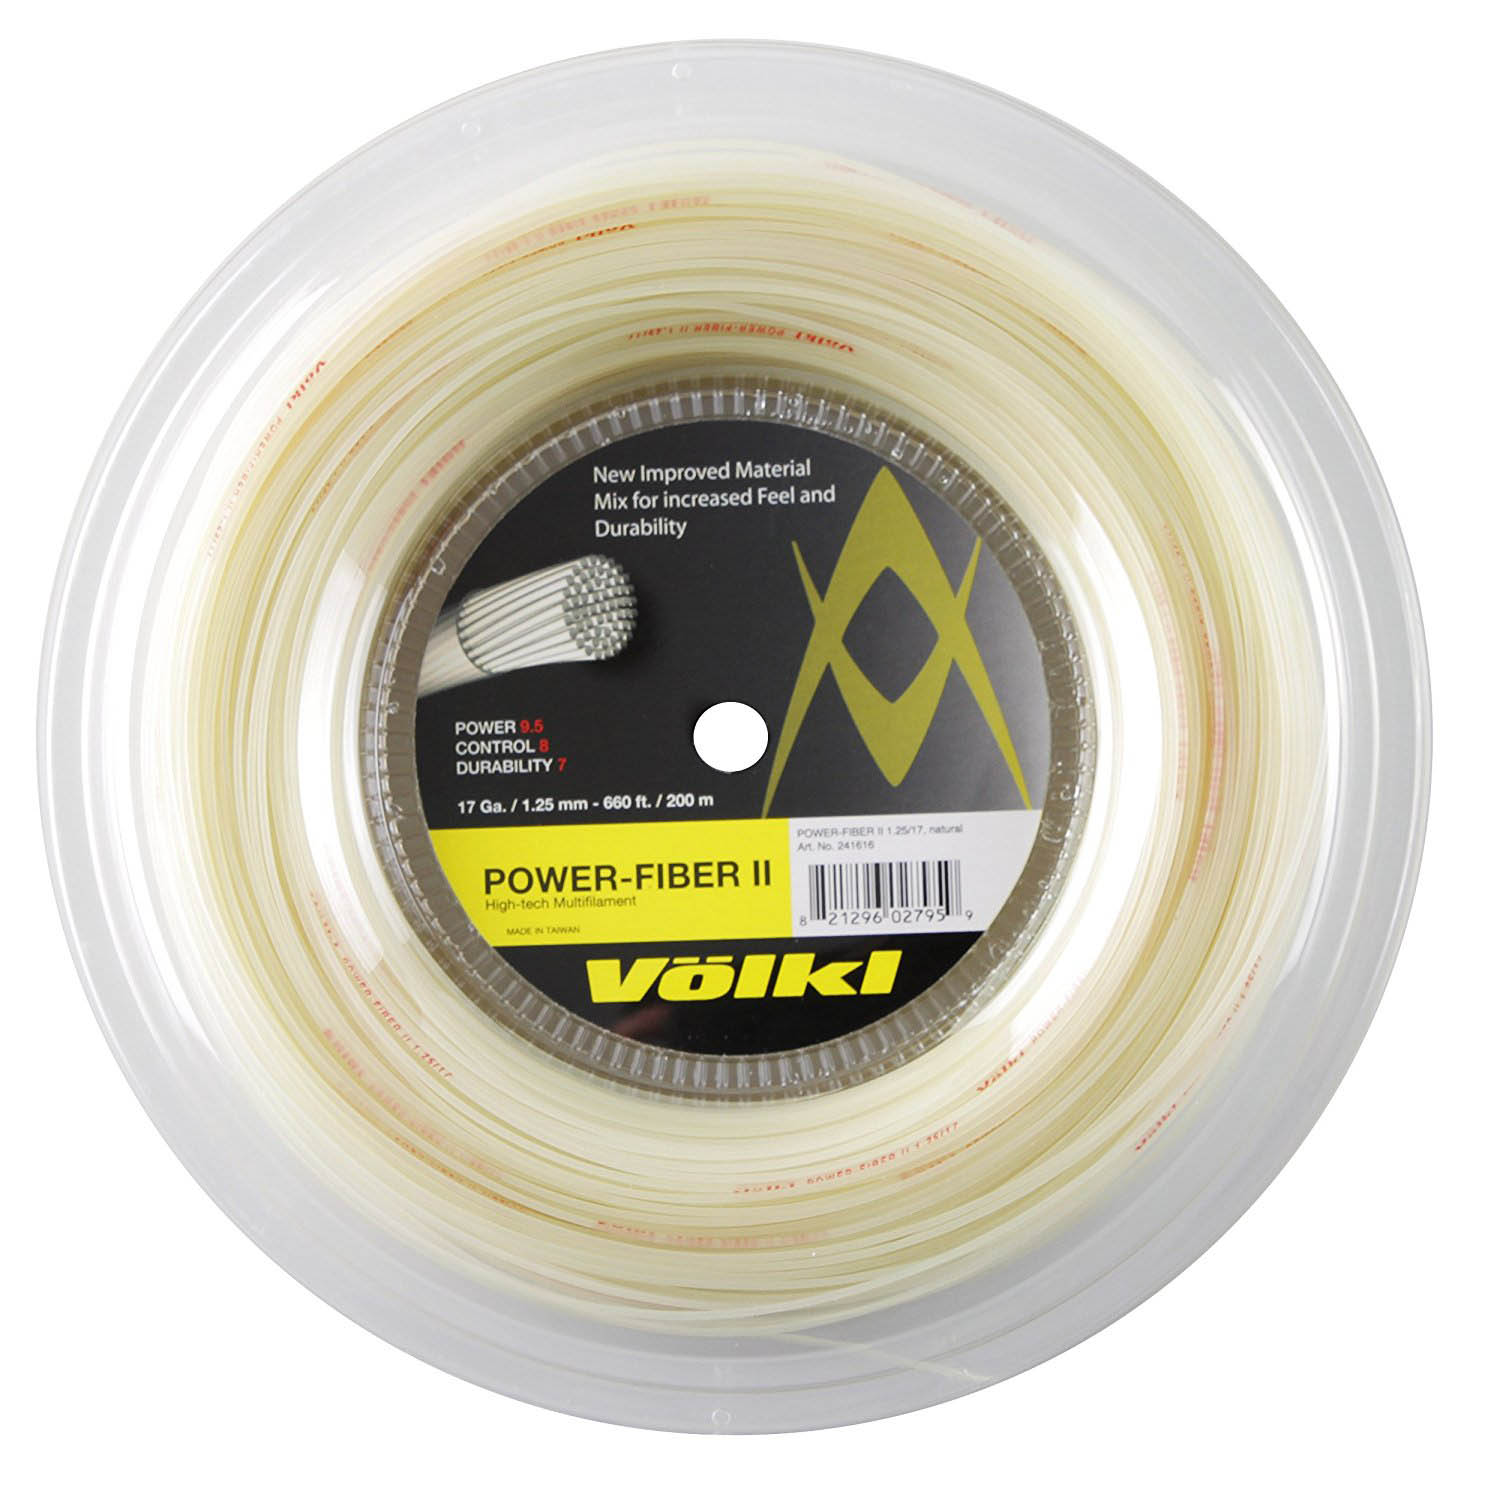 Volkl Power Fiber II Tennis String - 200m Reel - 1.25mm